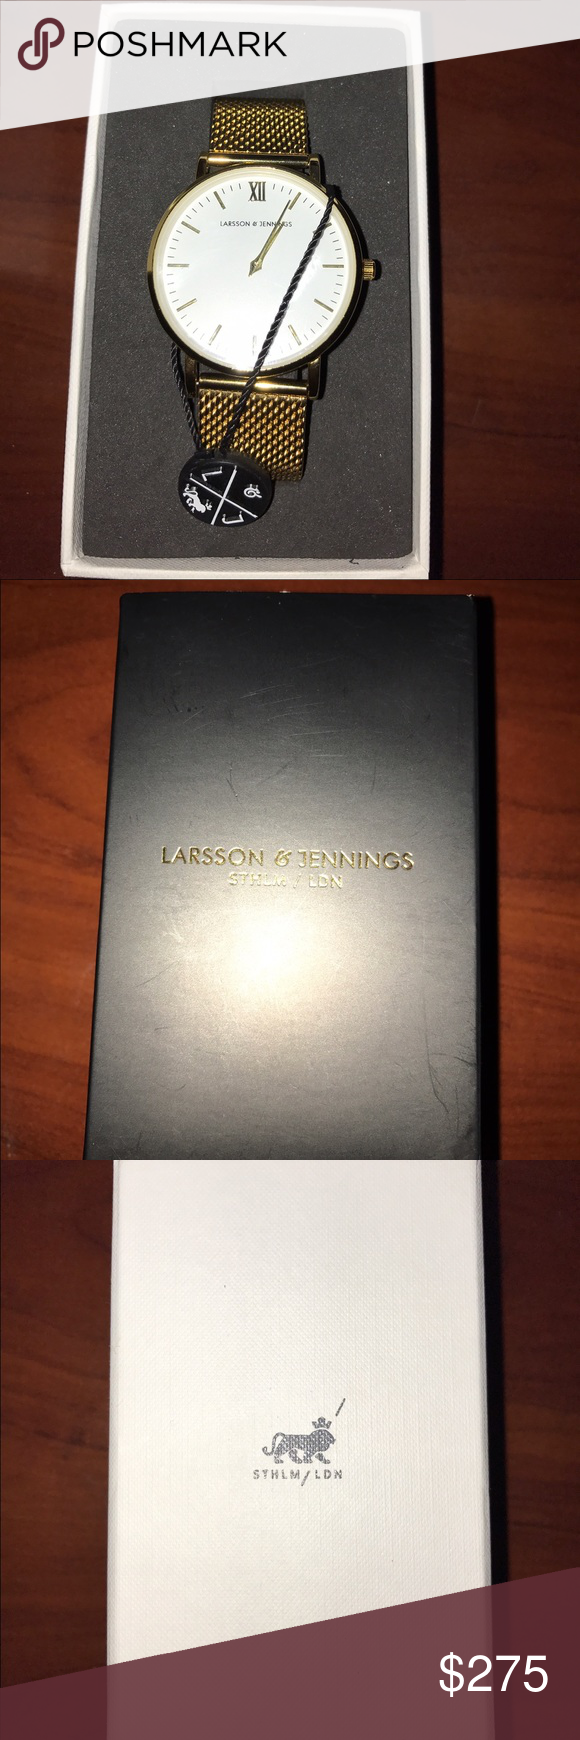 Larsson & Jennings Lugano 40mm Gold Watch Was a gift that I dont need. NEVER WORN Larsson & Jennings Accessories Watches